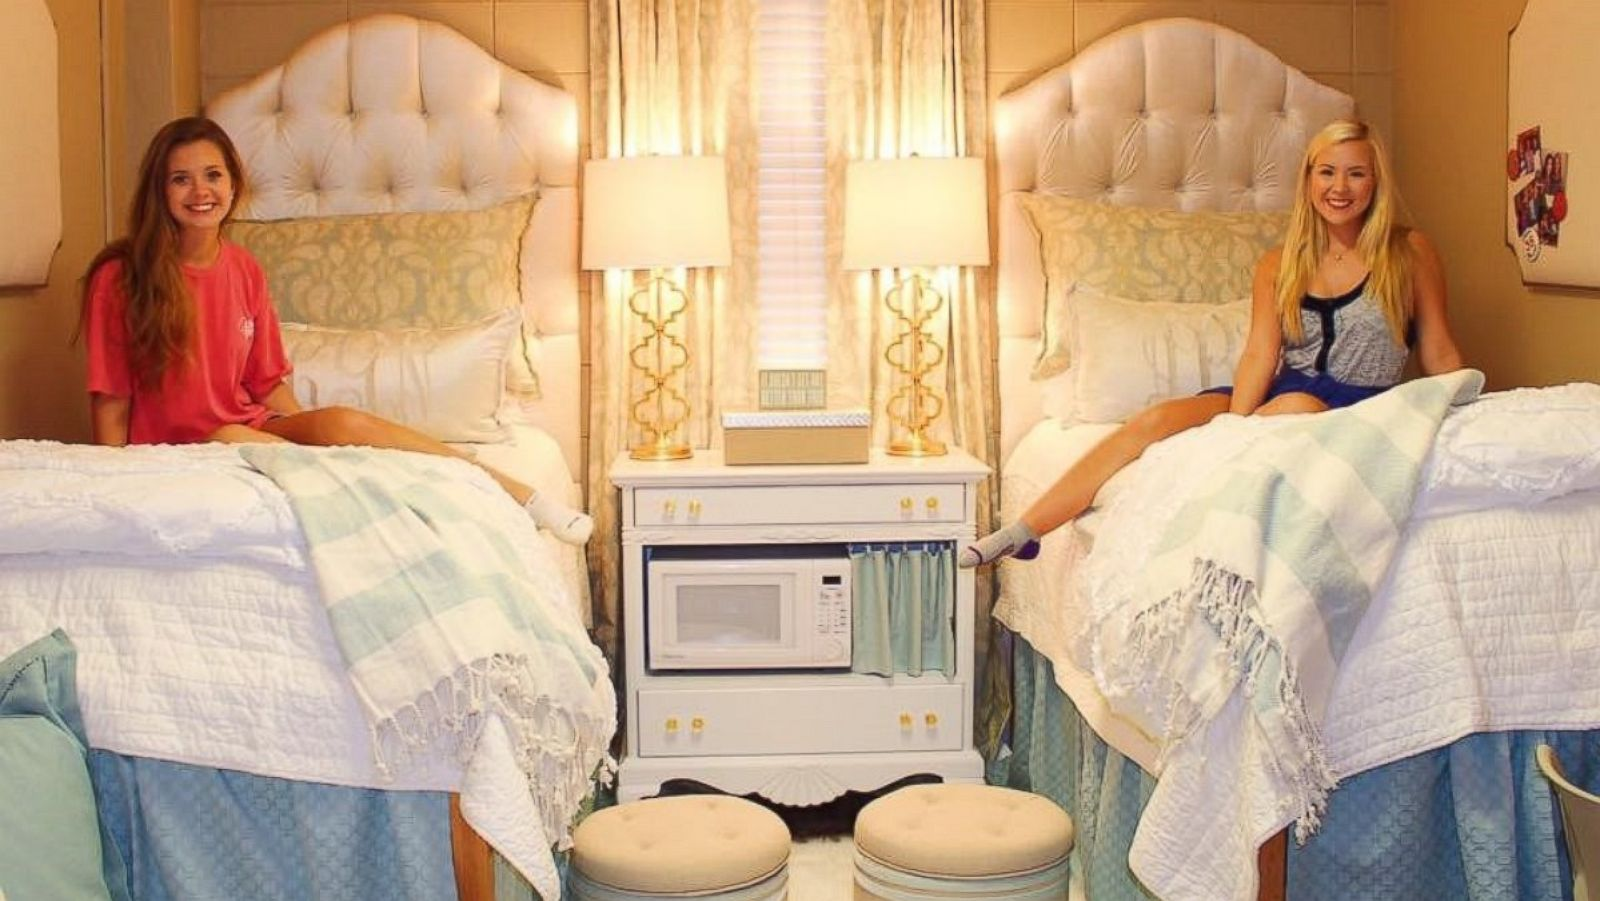 College Roommates\' Ultra-Chic Monogrammed Dorm Room Goes Viral - ABC ...